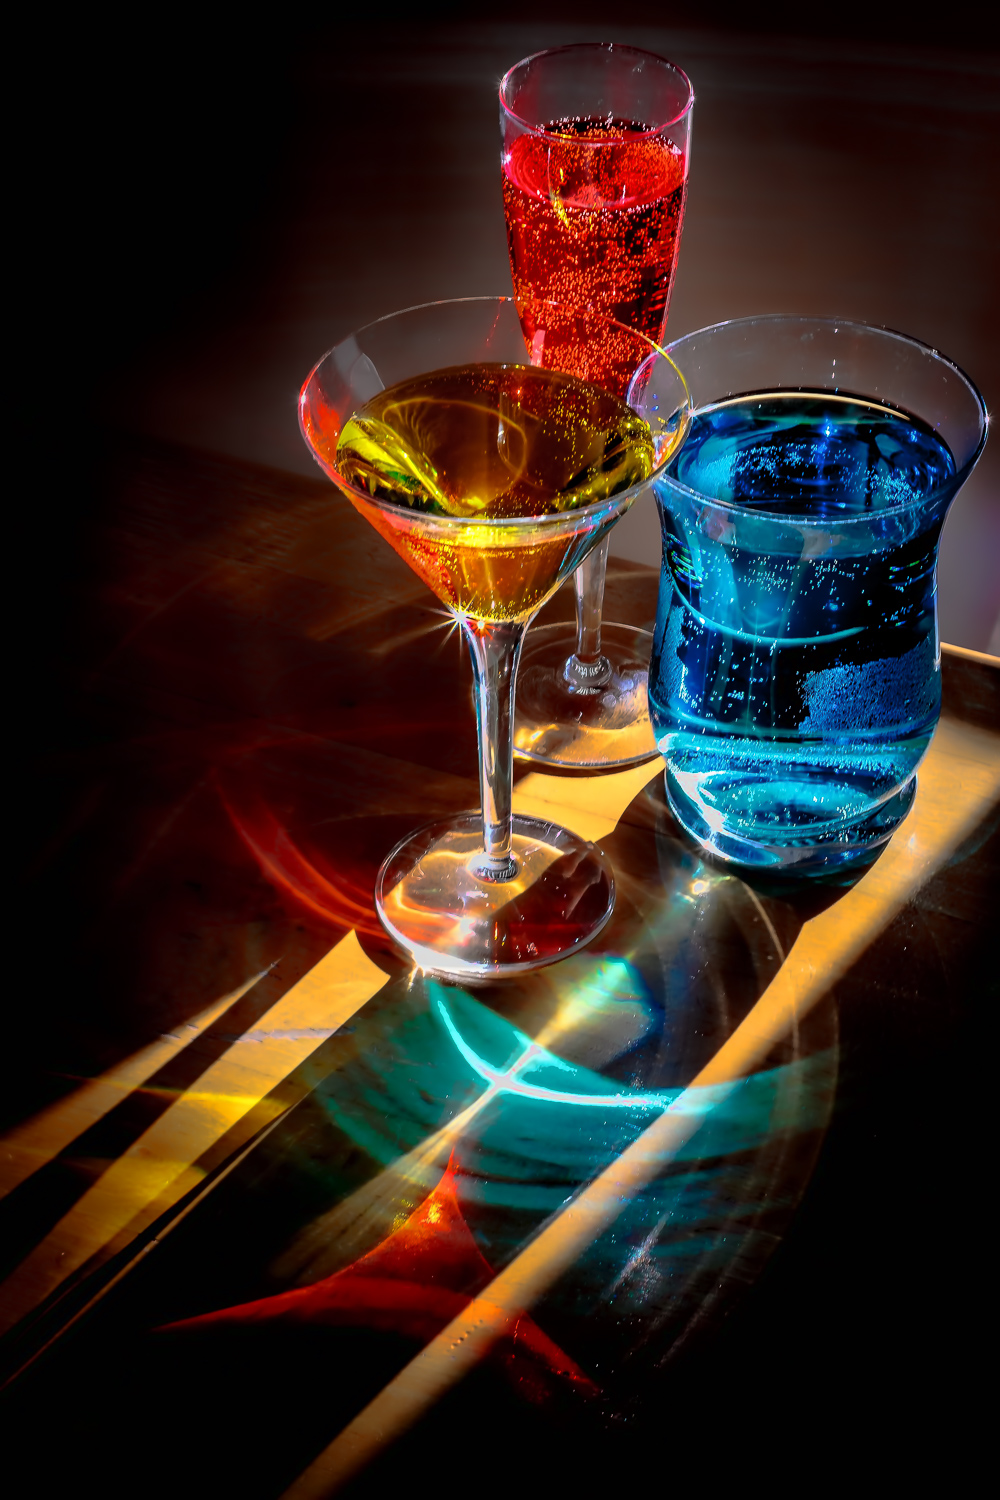 digital improve water glass understand colored beginner key george waves eastman photographer student know cool άρθρο από